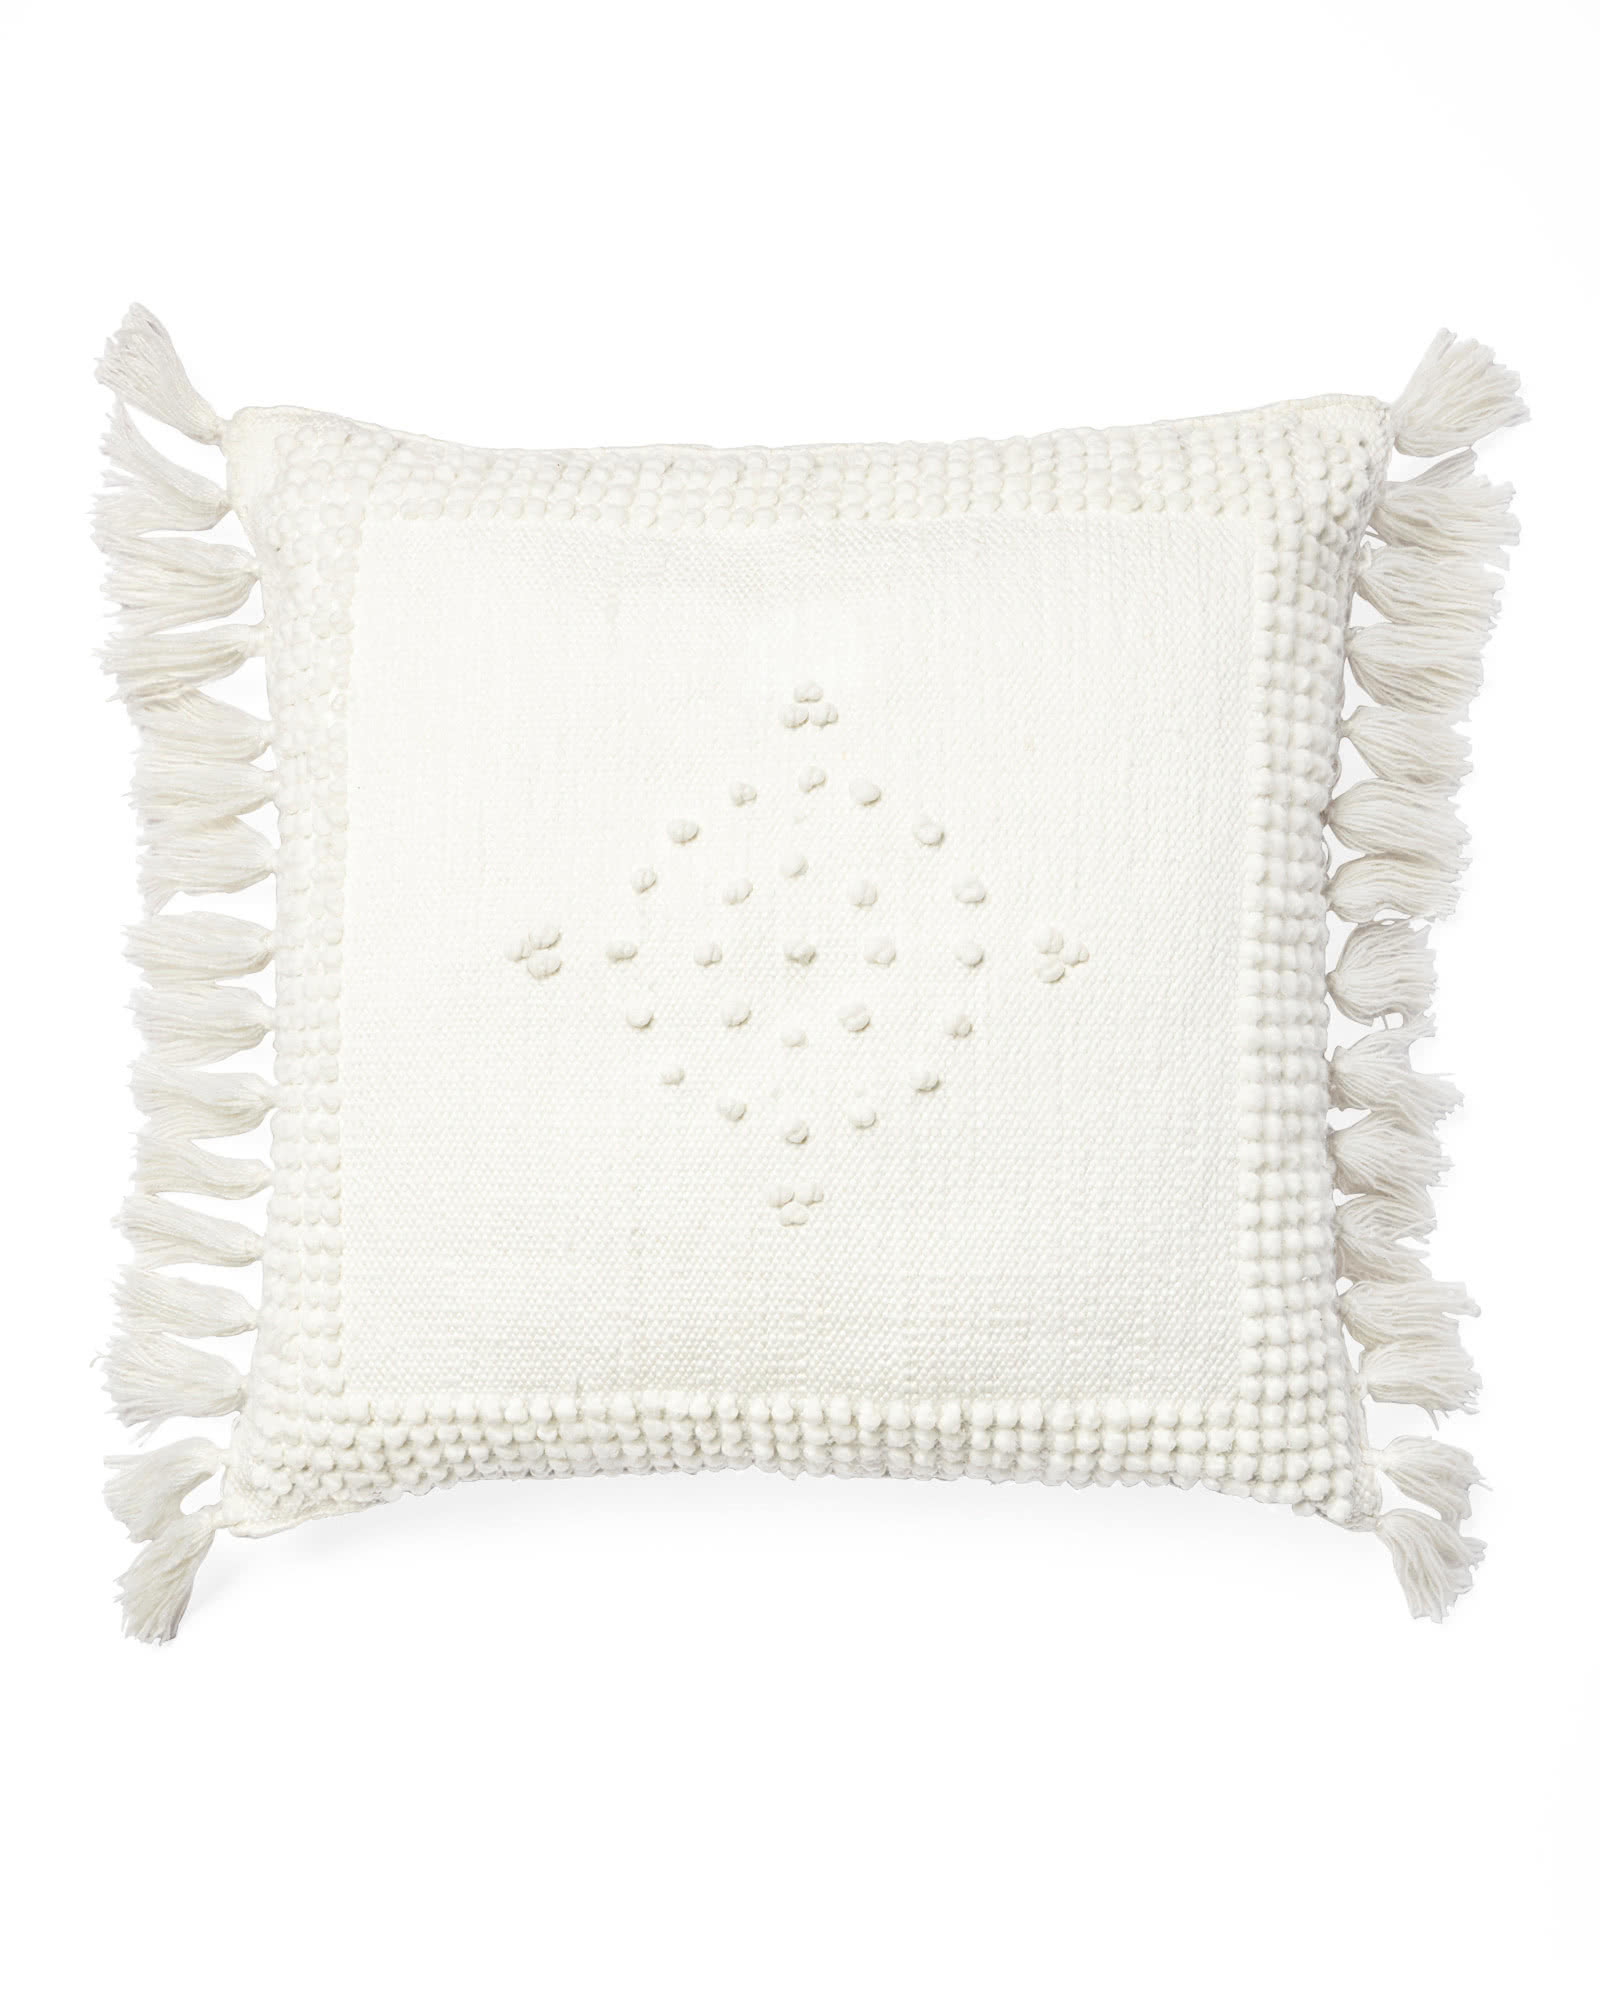 Montecito Pillow Cover, Ivory